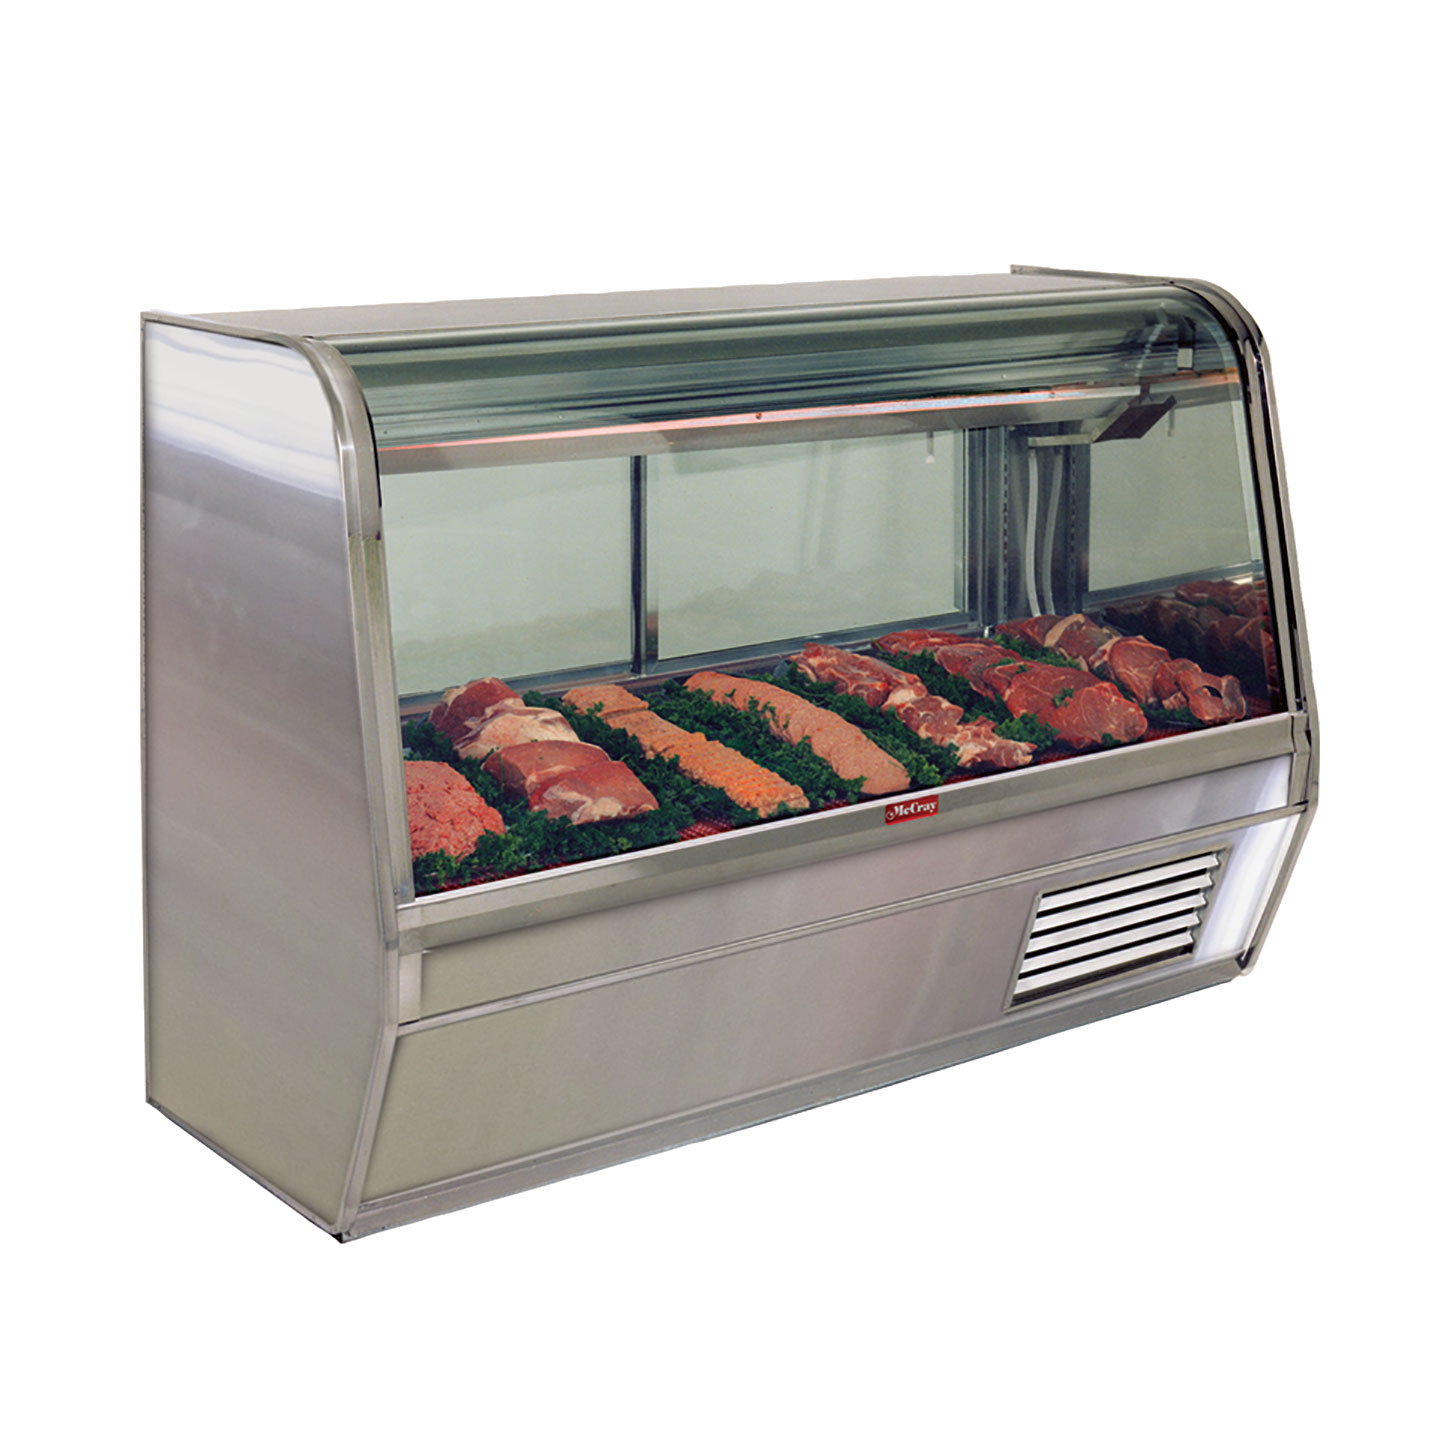 Howard-McCray SC-CMS32E-6C-S-LED display case, red meat deli